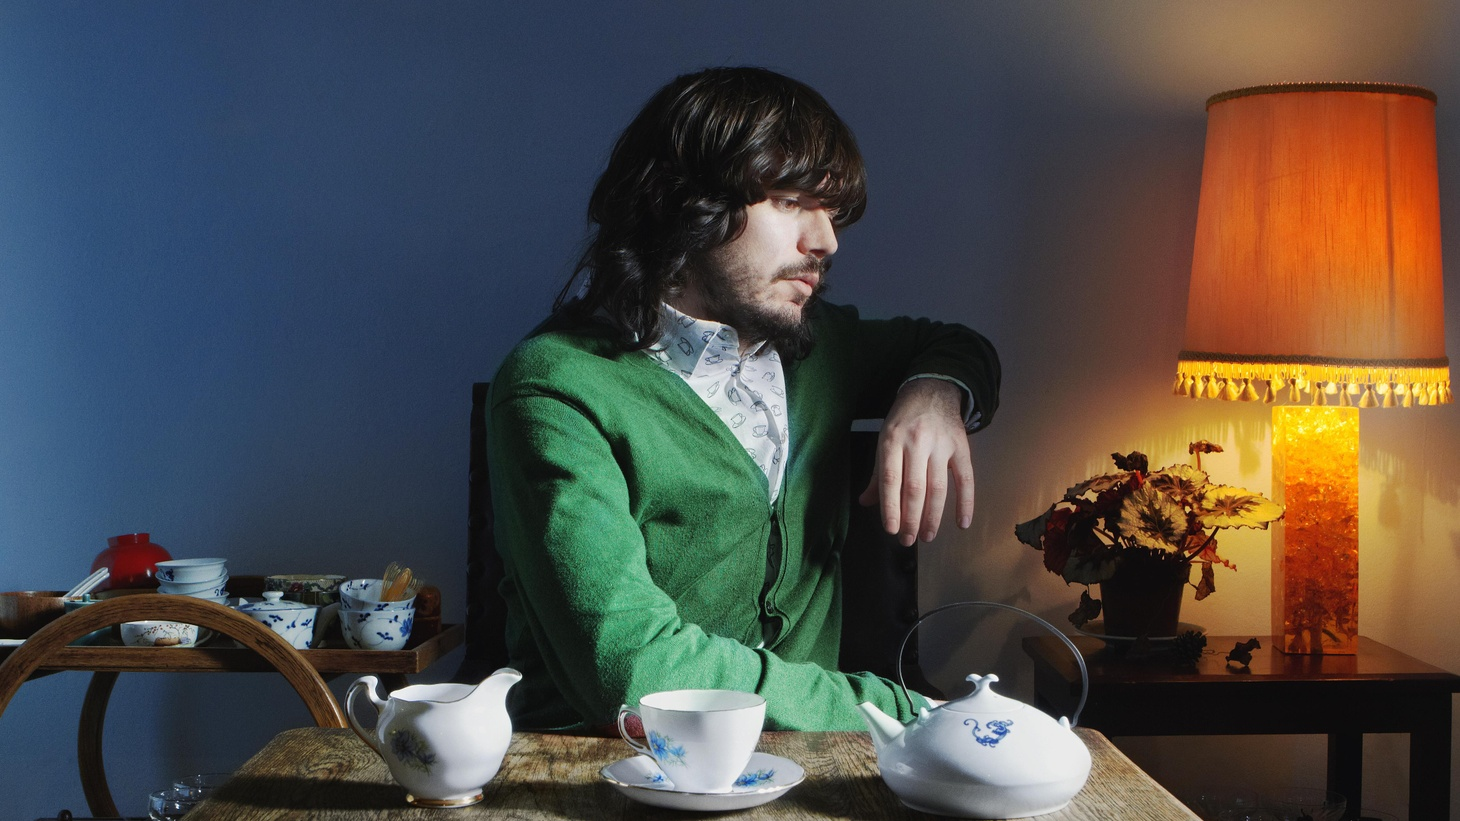 Genre-bending electronic producer Bibio has made a great new album that we are all enjoying here at KCRW. He'll perform new songs on Morning Becomes Eclectic at 11:15am.